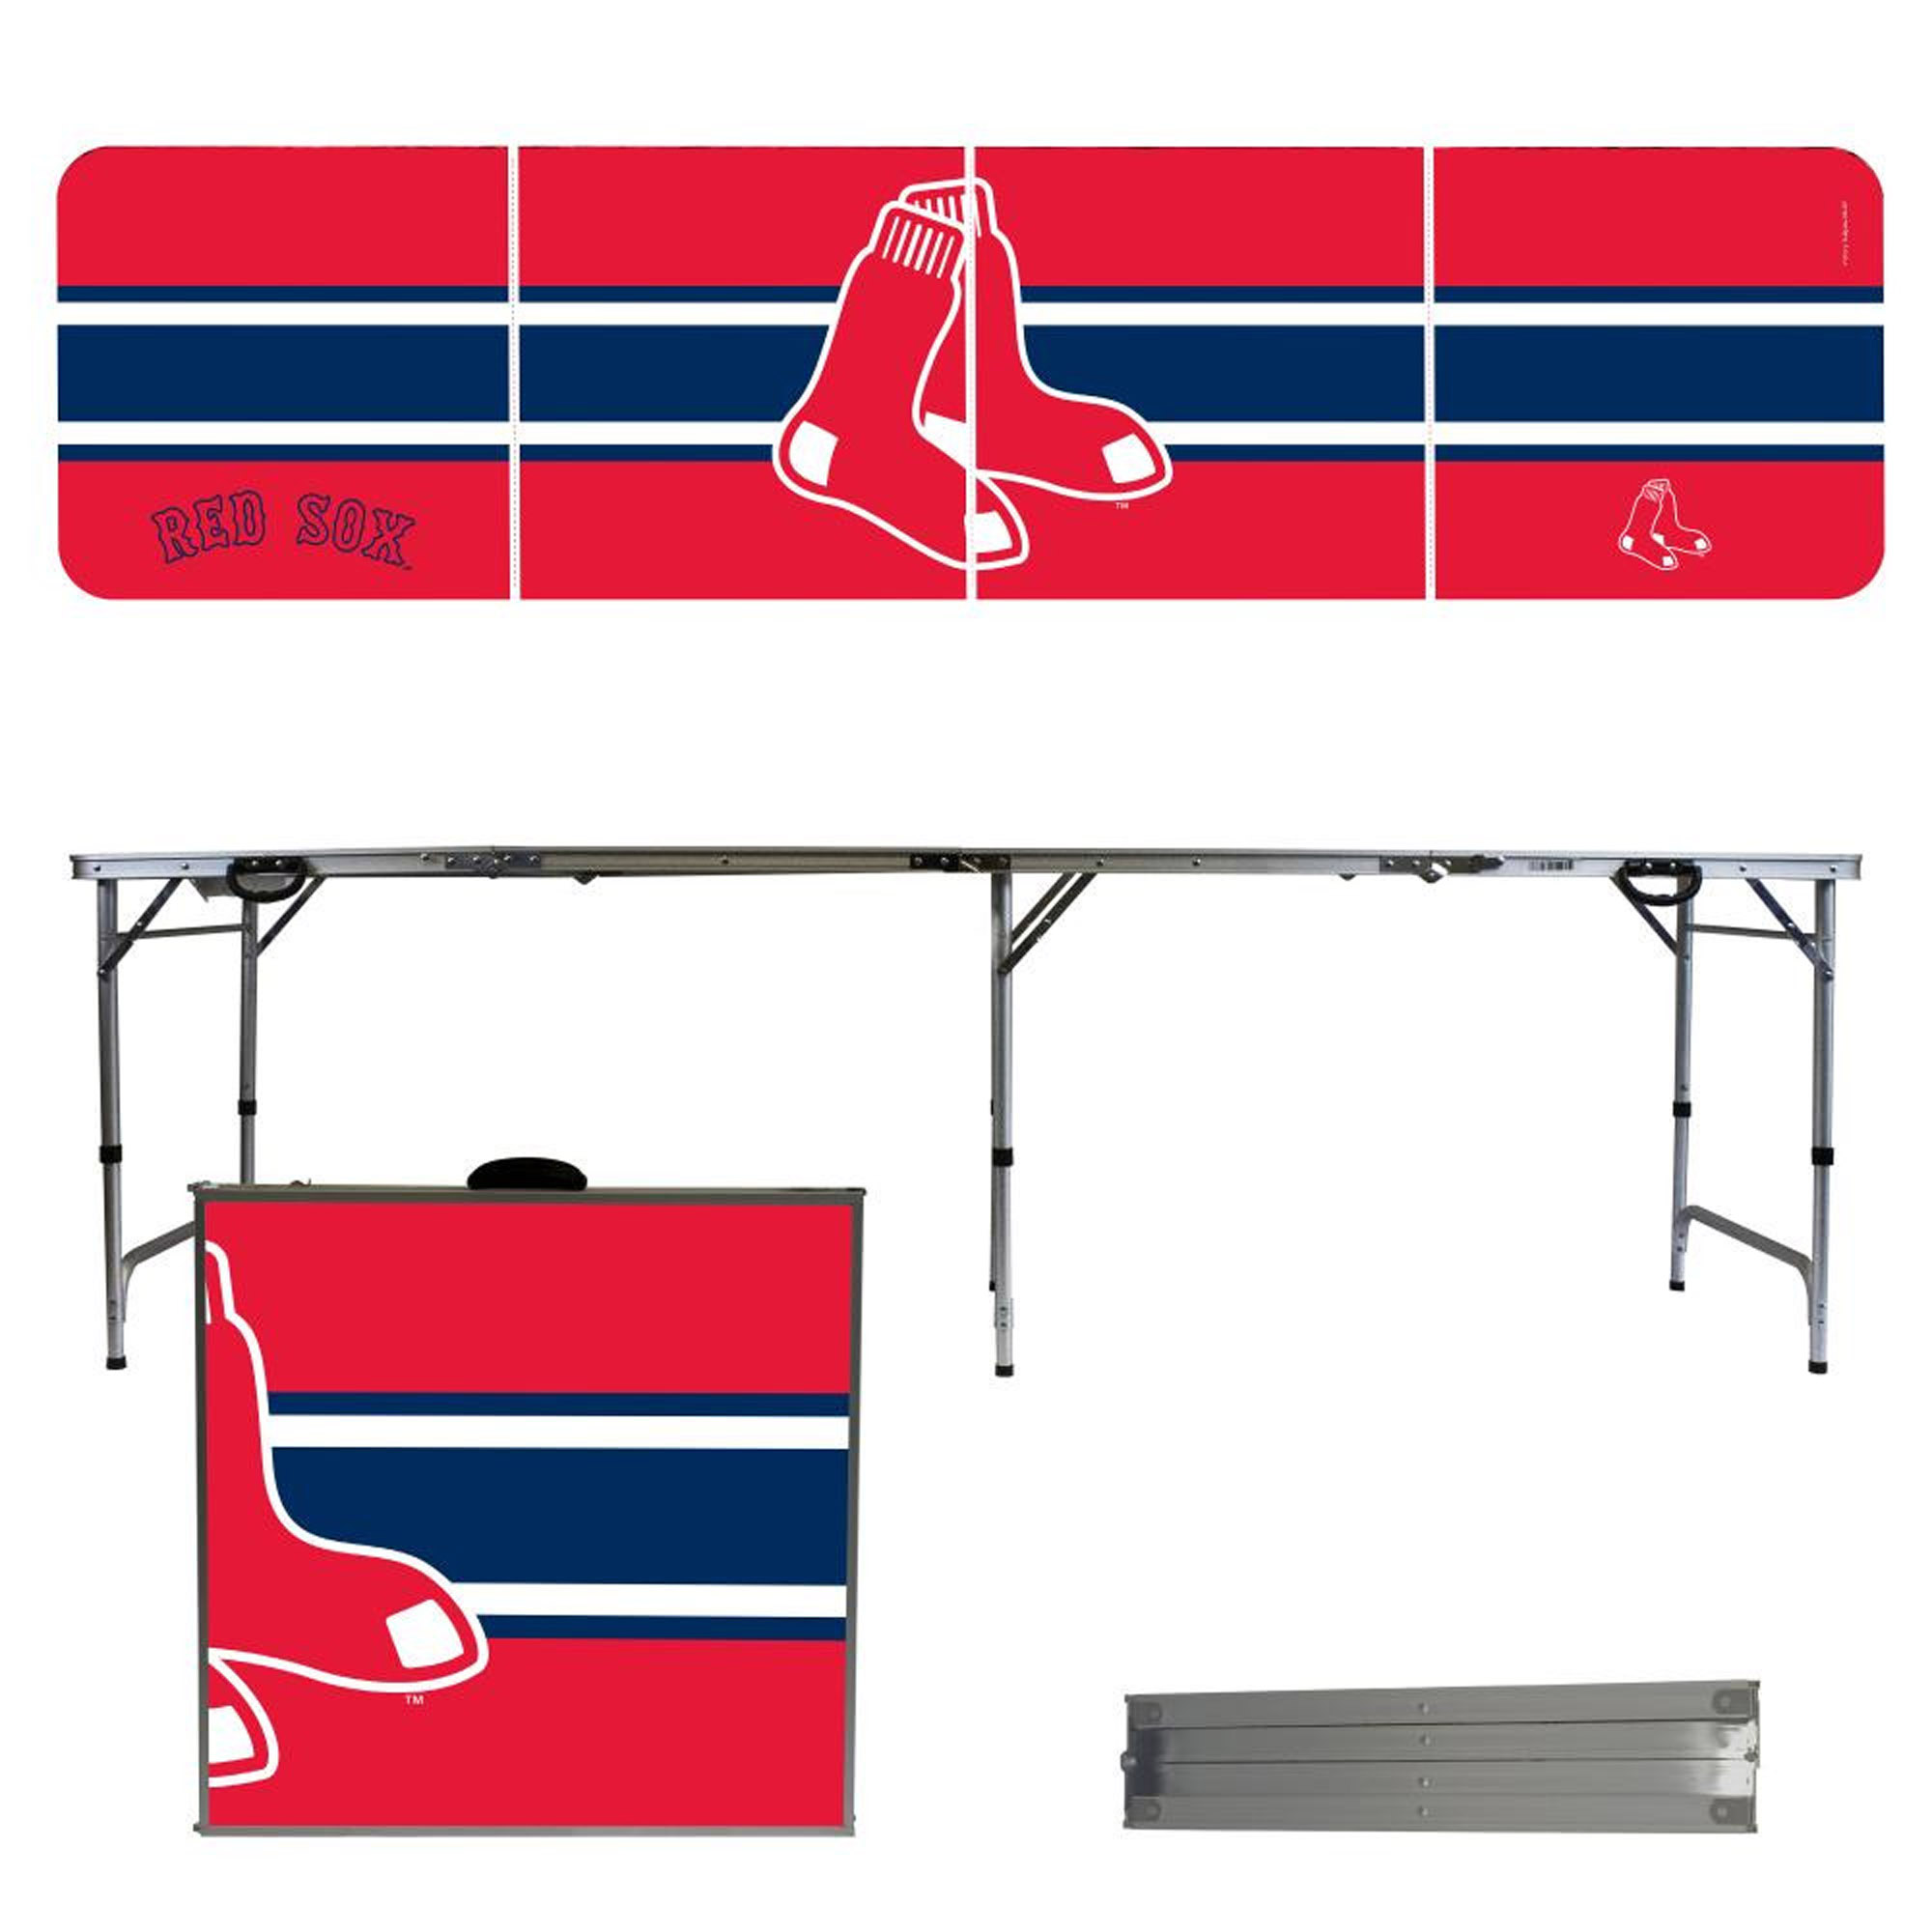 Boston Red Sox Striped Design 8' Portable Folding Tailgate Table - No Size